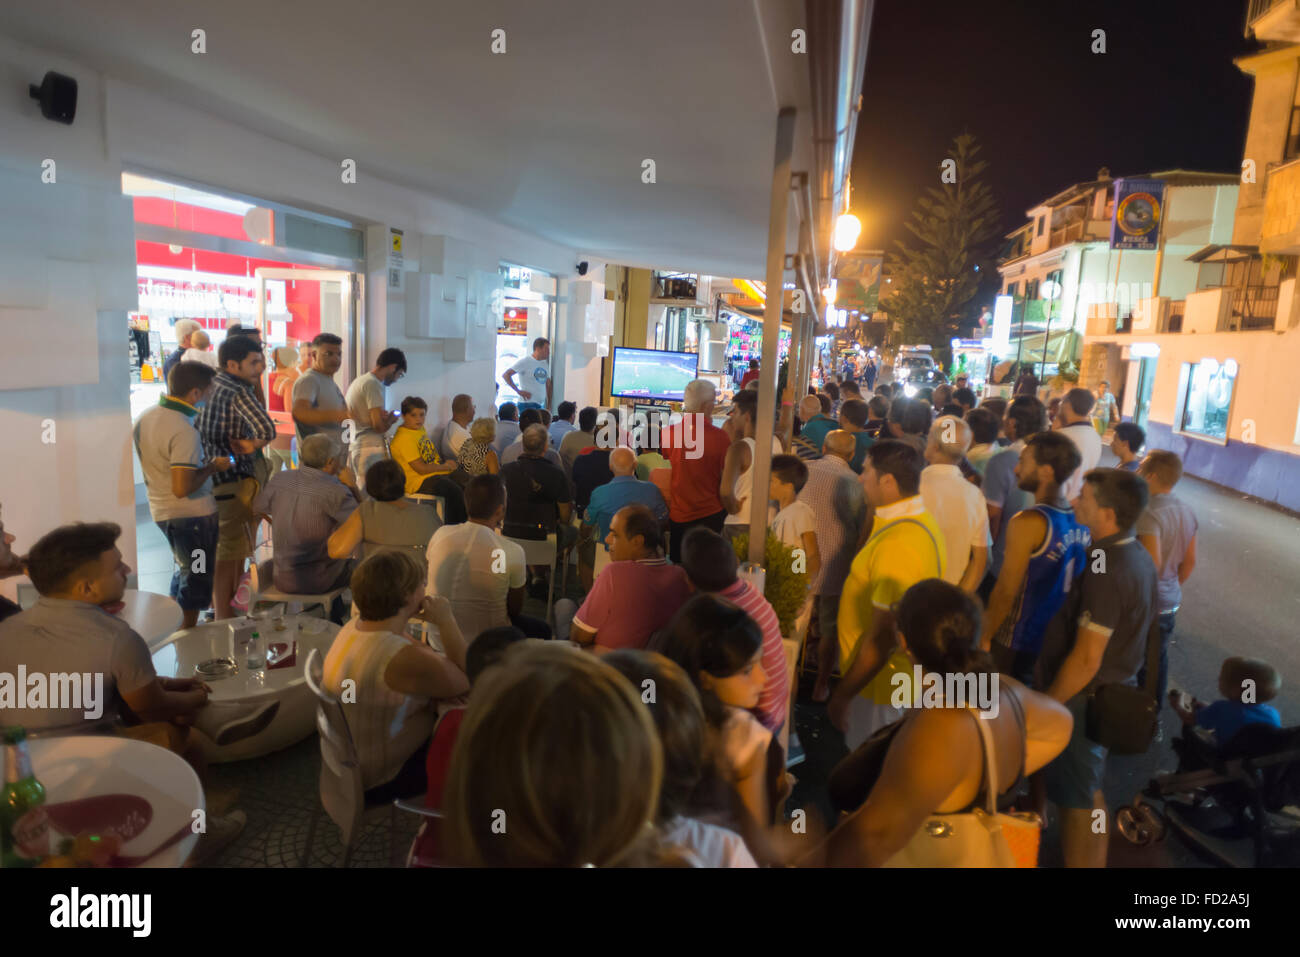 Spectators on the terrace of a bar and street watching the television broadcast of a soccer game in southern Italy - Stock Image